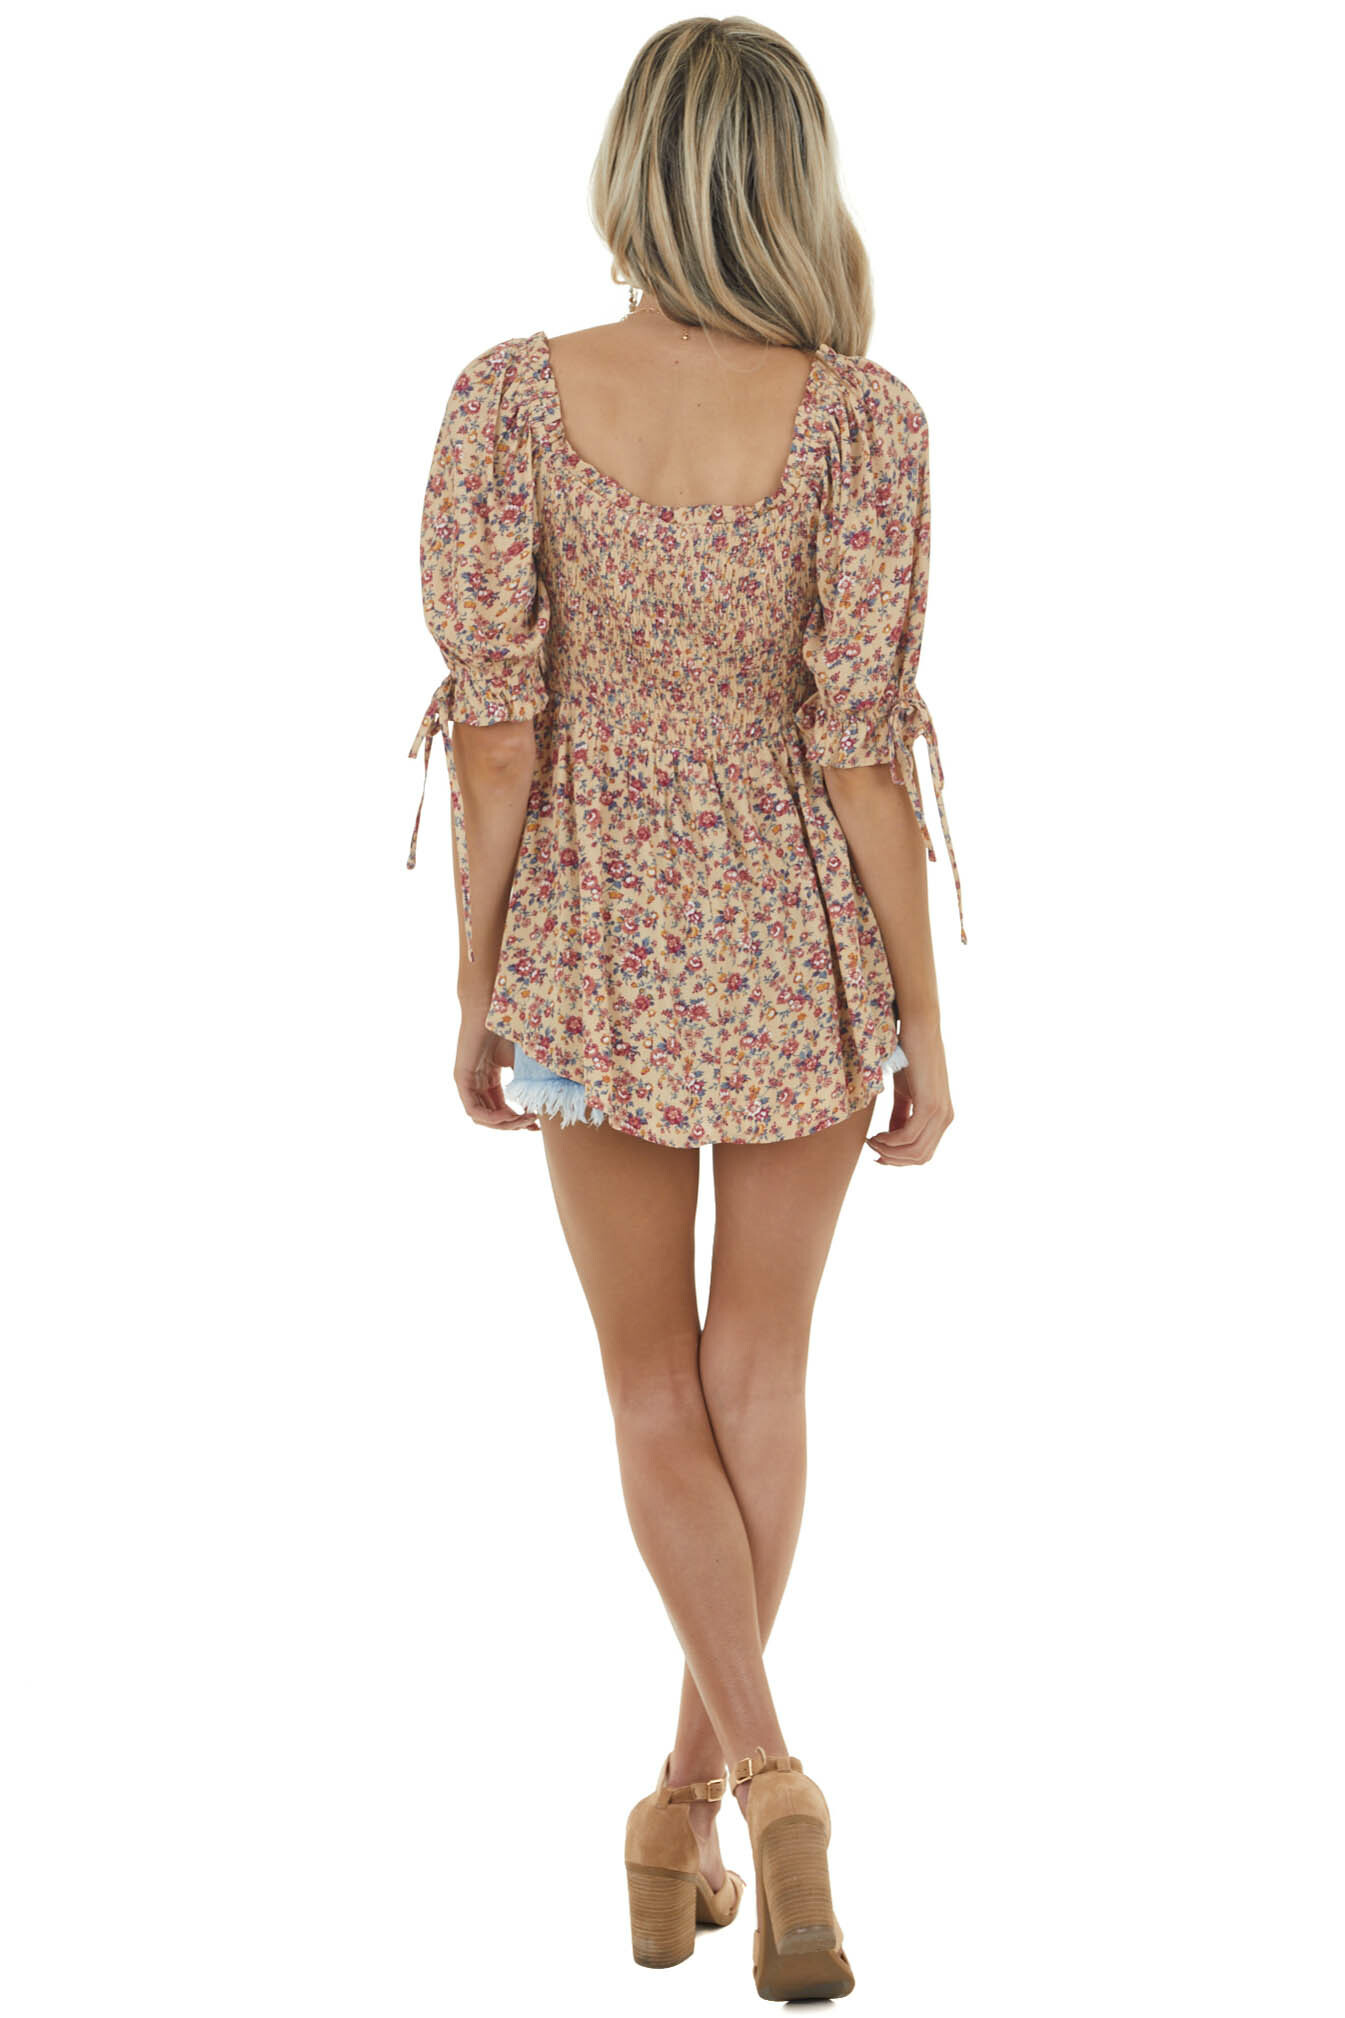 Beige Floral Print Smocked Blouse with Half Puff Sleeves